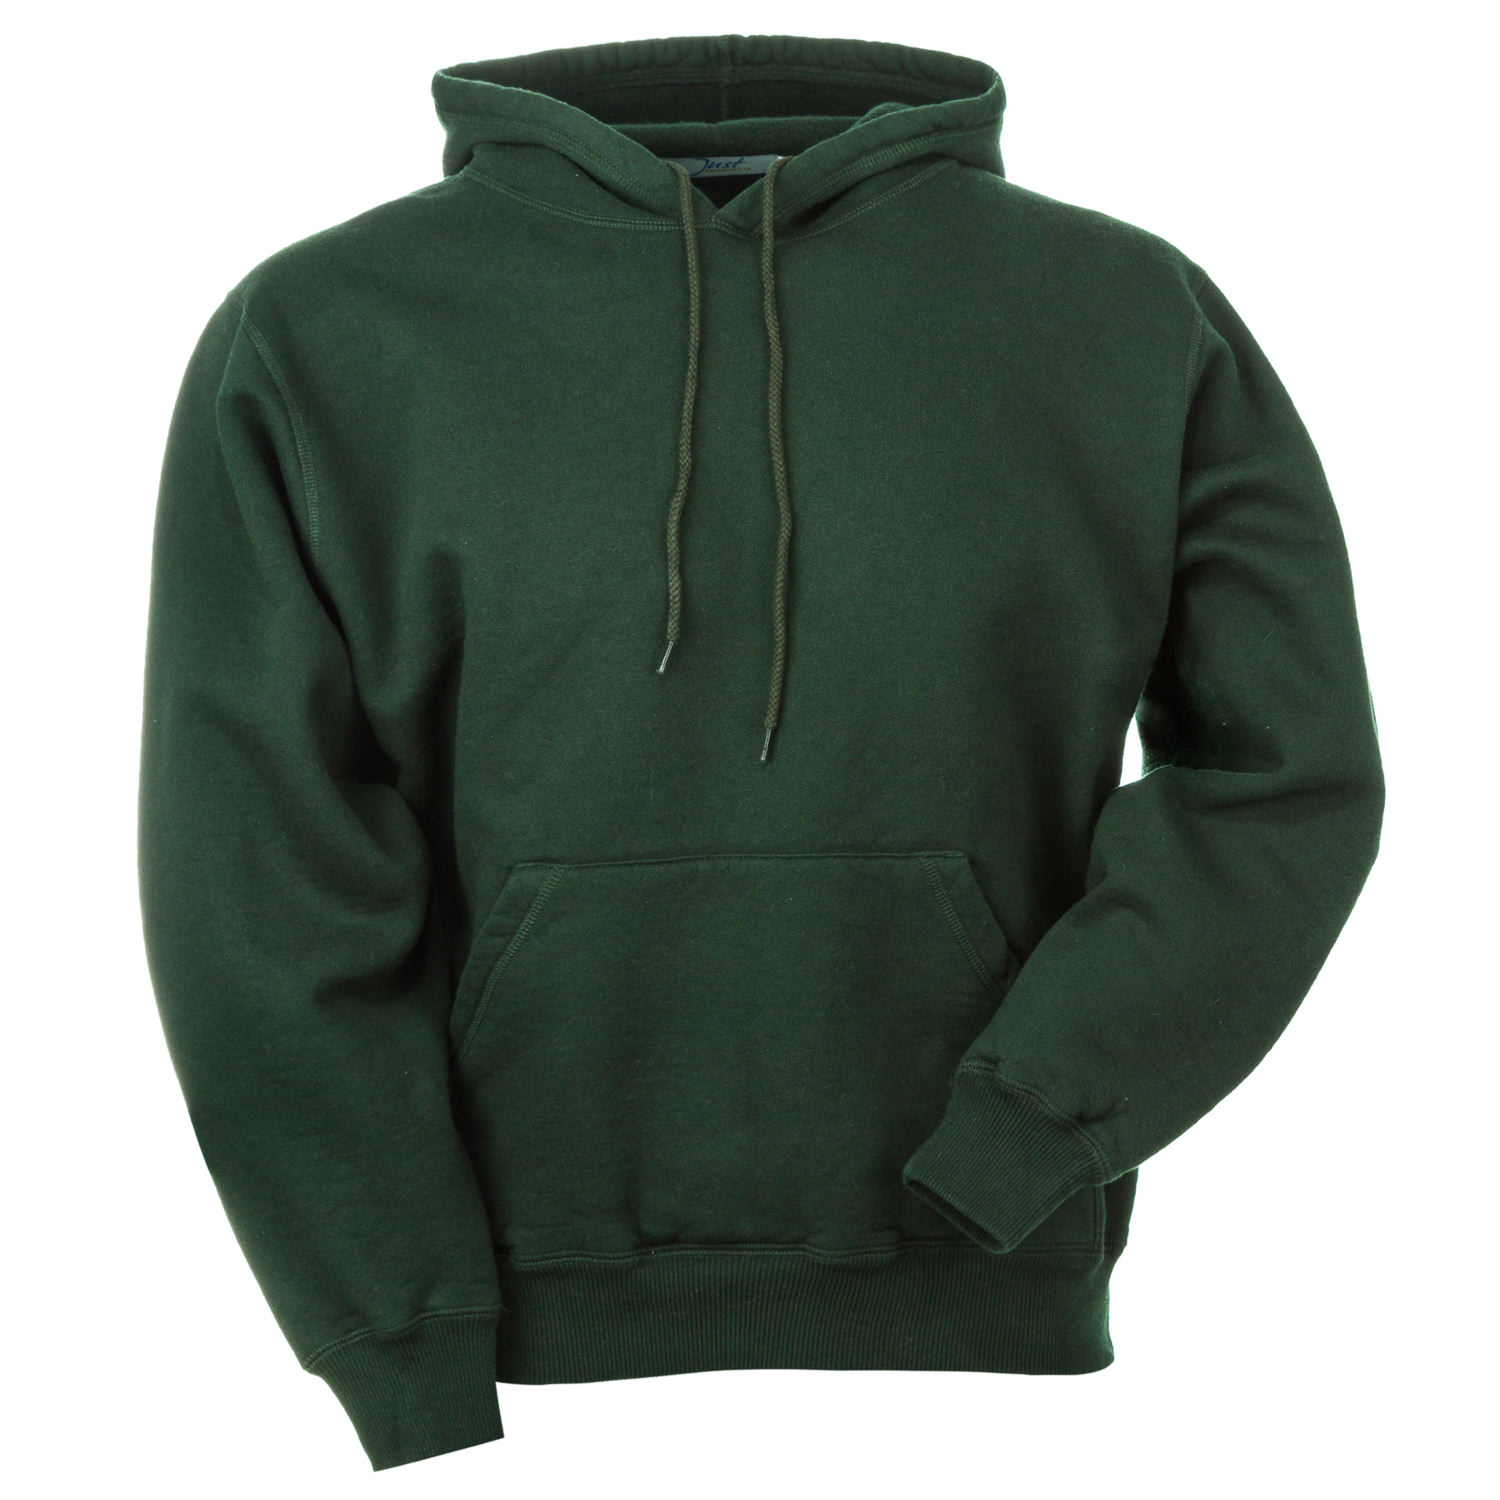 Hooded Pullover Park Green 100% Cotton